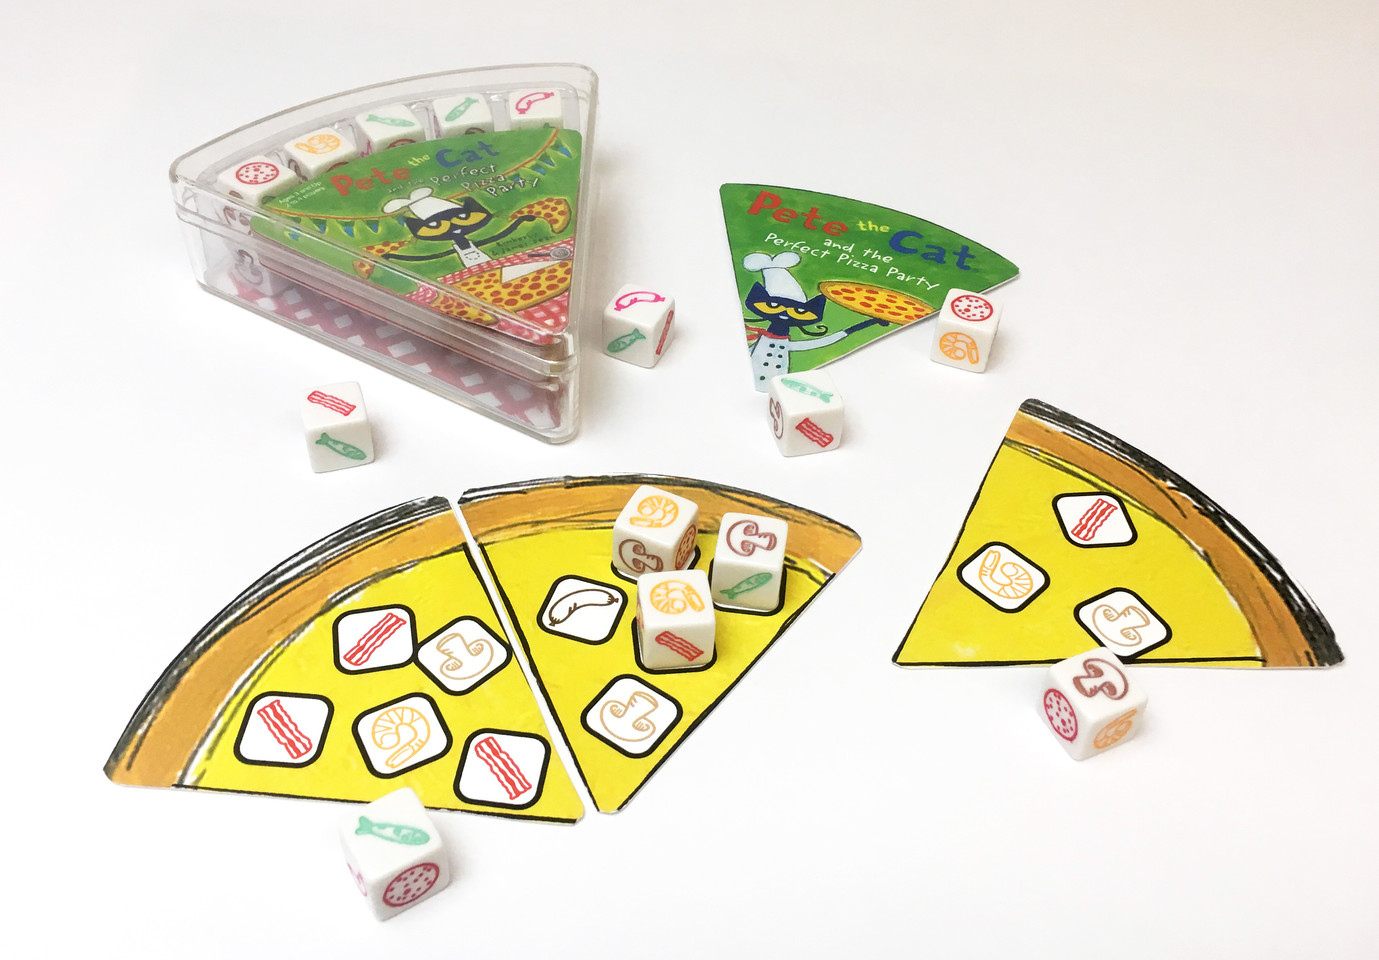 Pizza Party Components